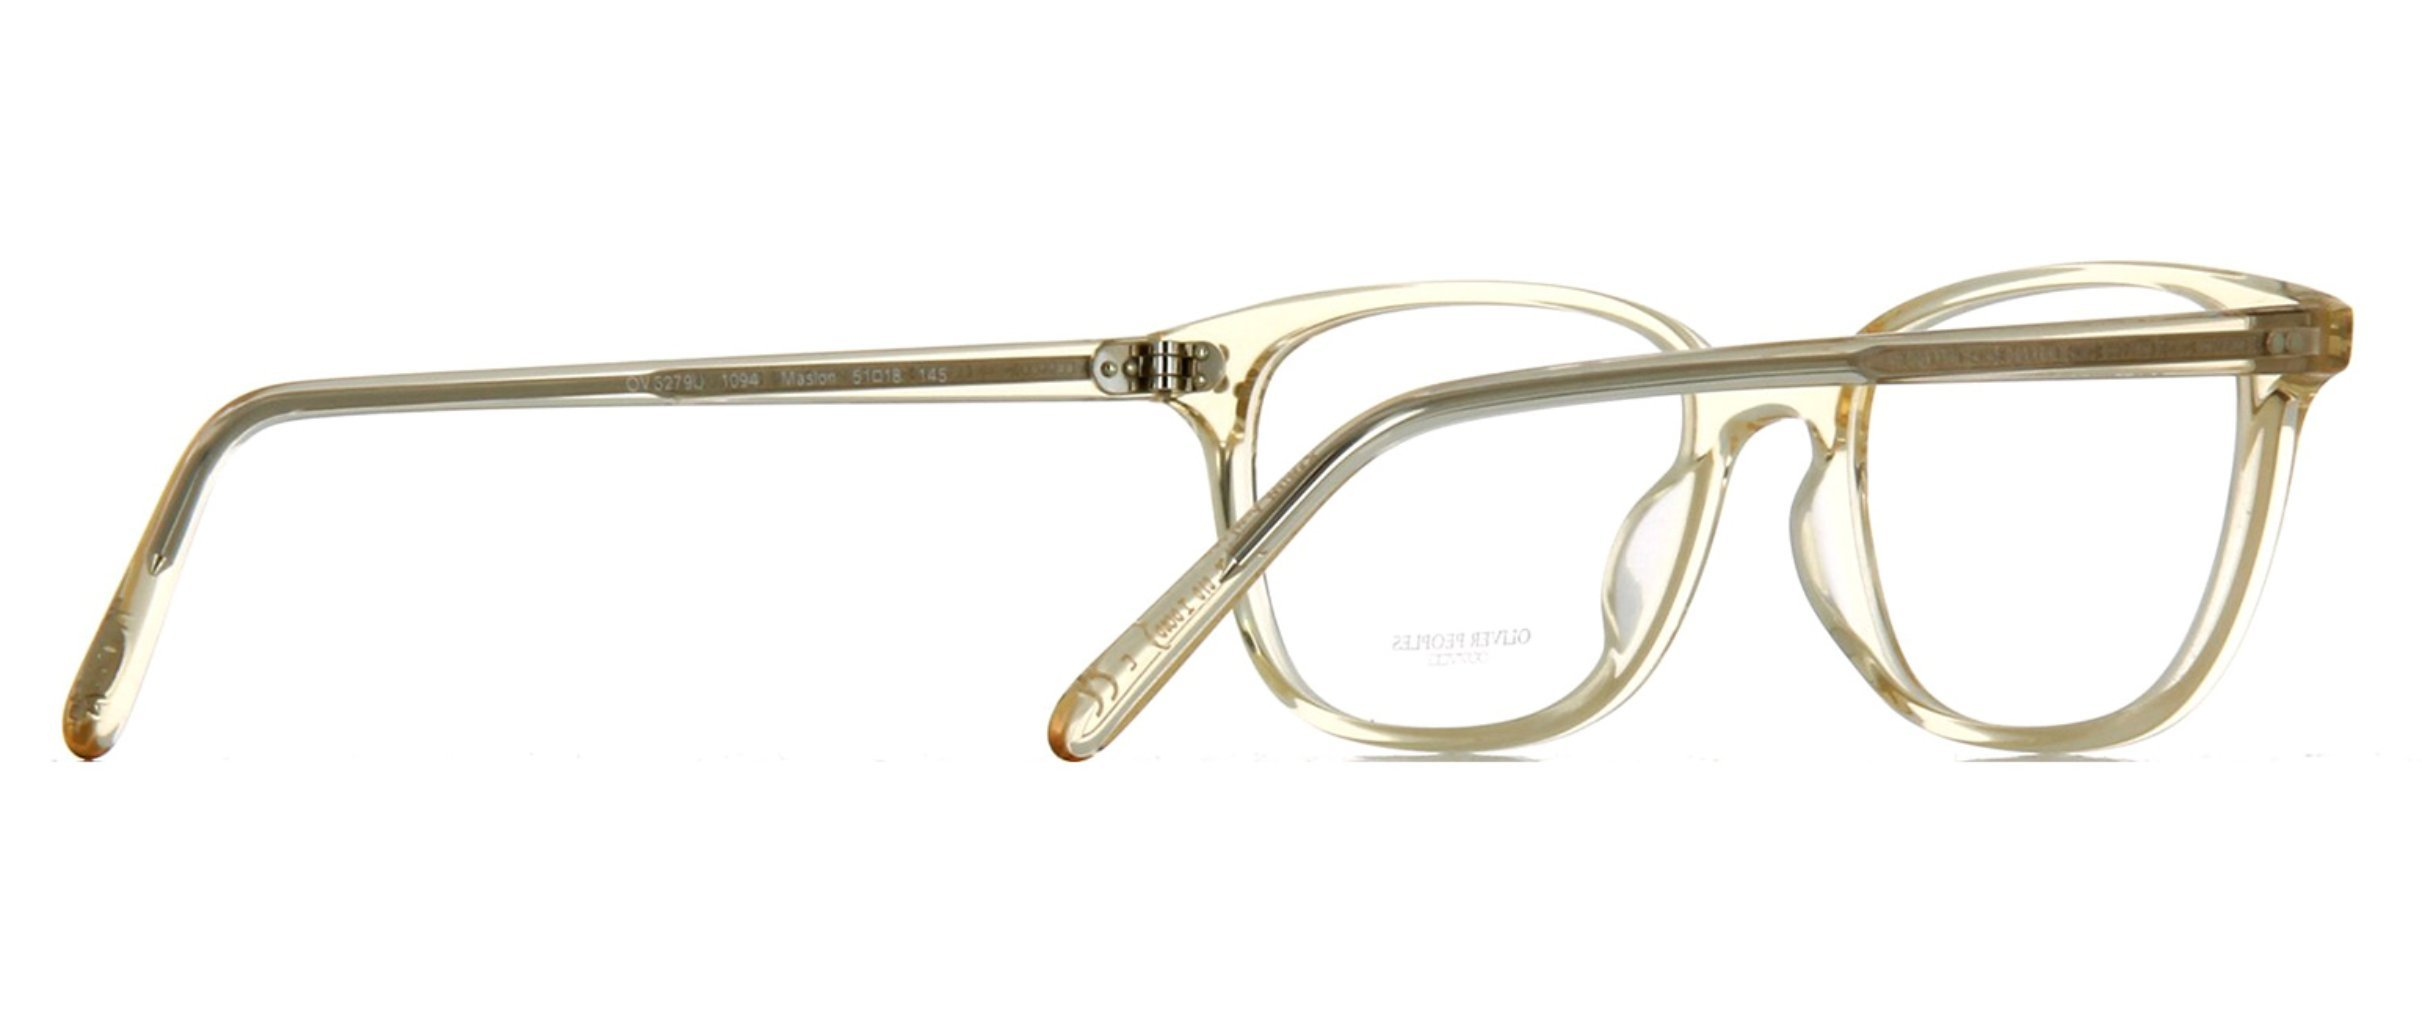 9daebc1ee1 Oliver Peoples Rx Eyeglasses Frames Maslon 5279U 1094 53x18 Light Clear  Yellow